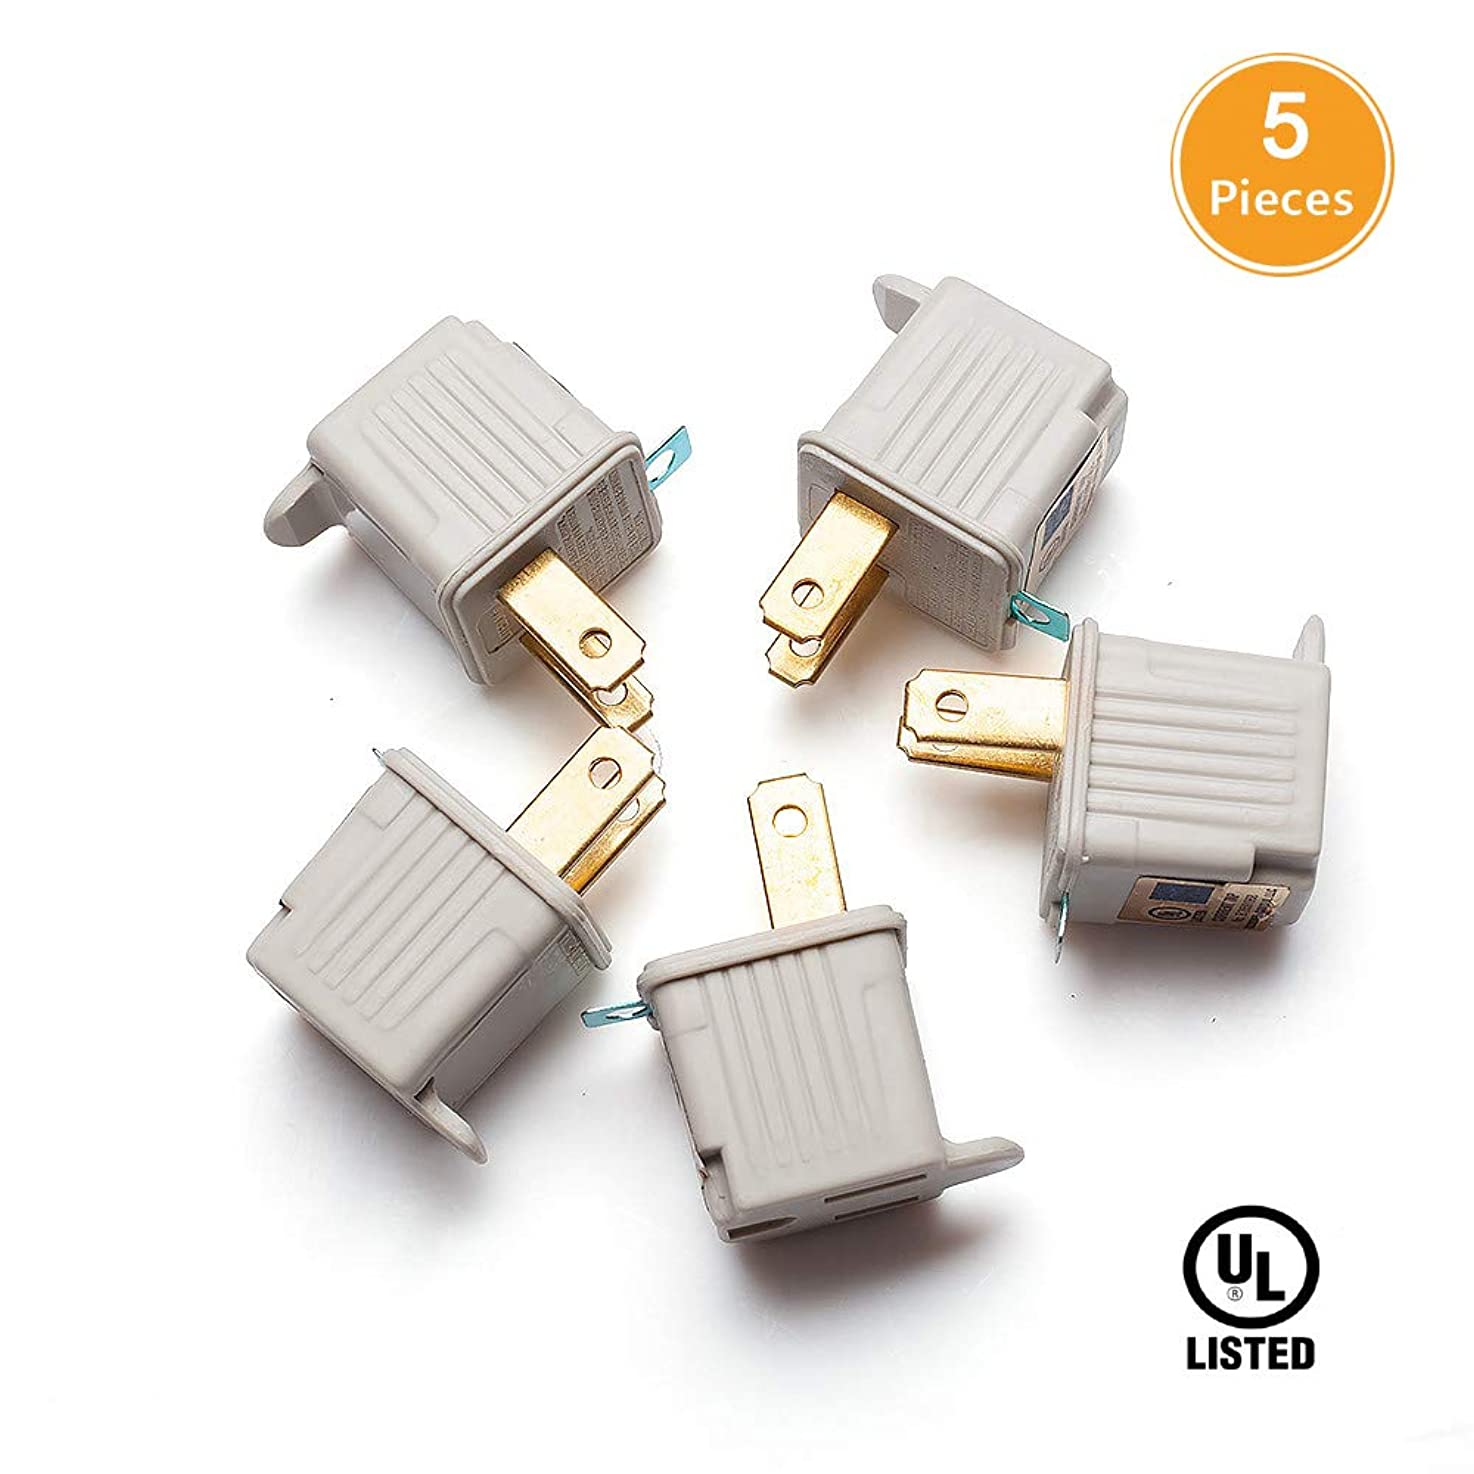 TENINYU Grounded Adapter 3-Prong to 2-Prong Outlet Converter (5 Pack) - 3 Pin to 2 Pin Plug Socket Adapter Extension for Electrical Cord, Household, Workshops, Industrial, Machinery-White kabzjndlhoarj3